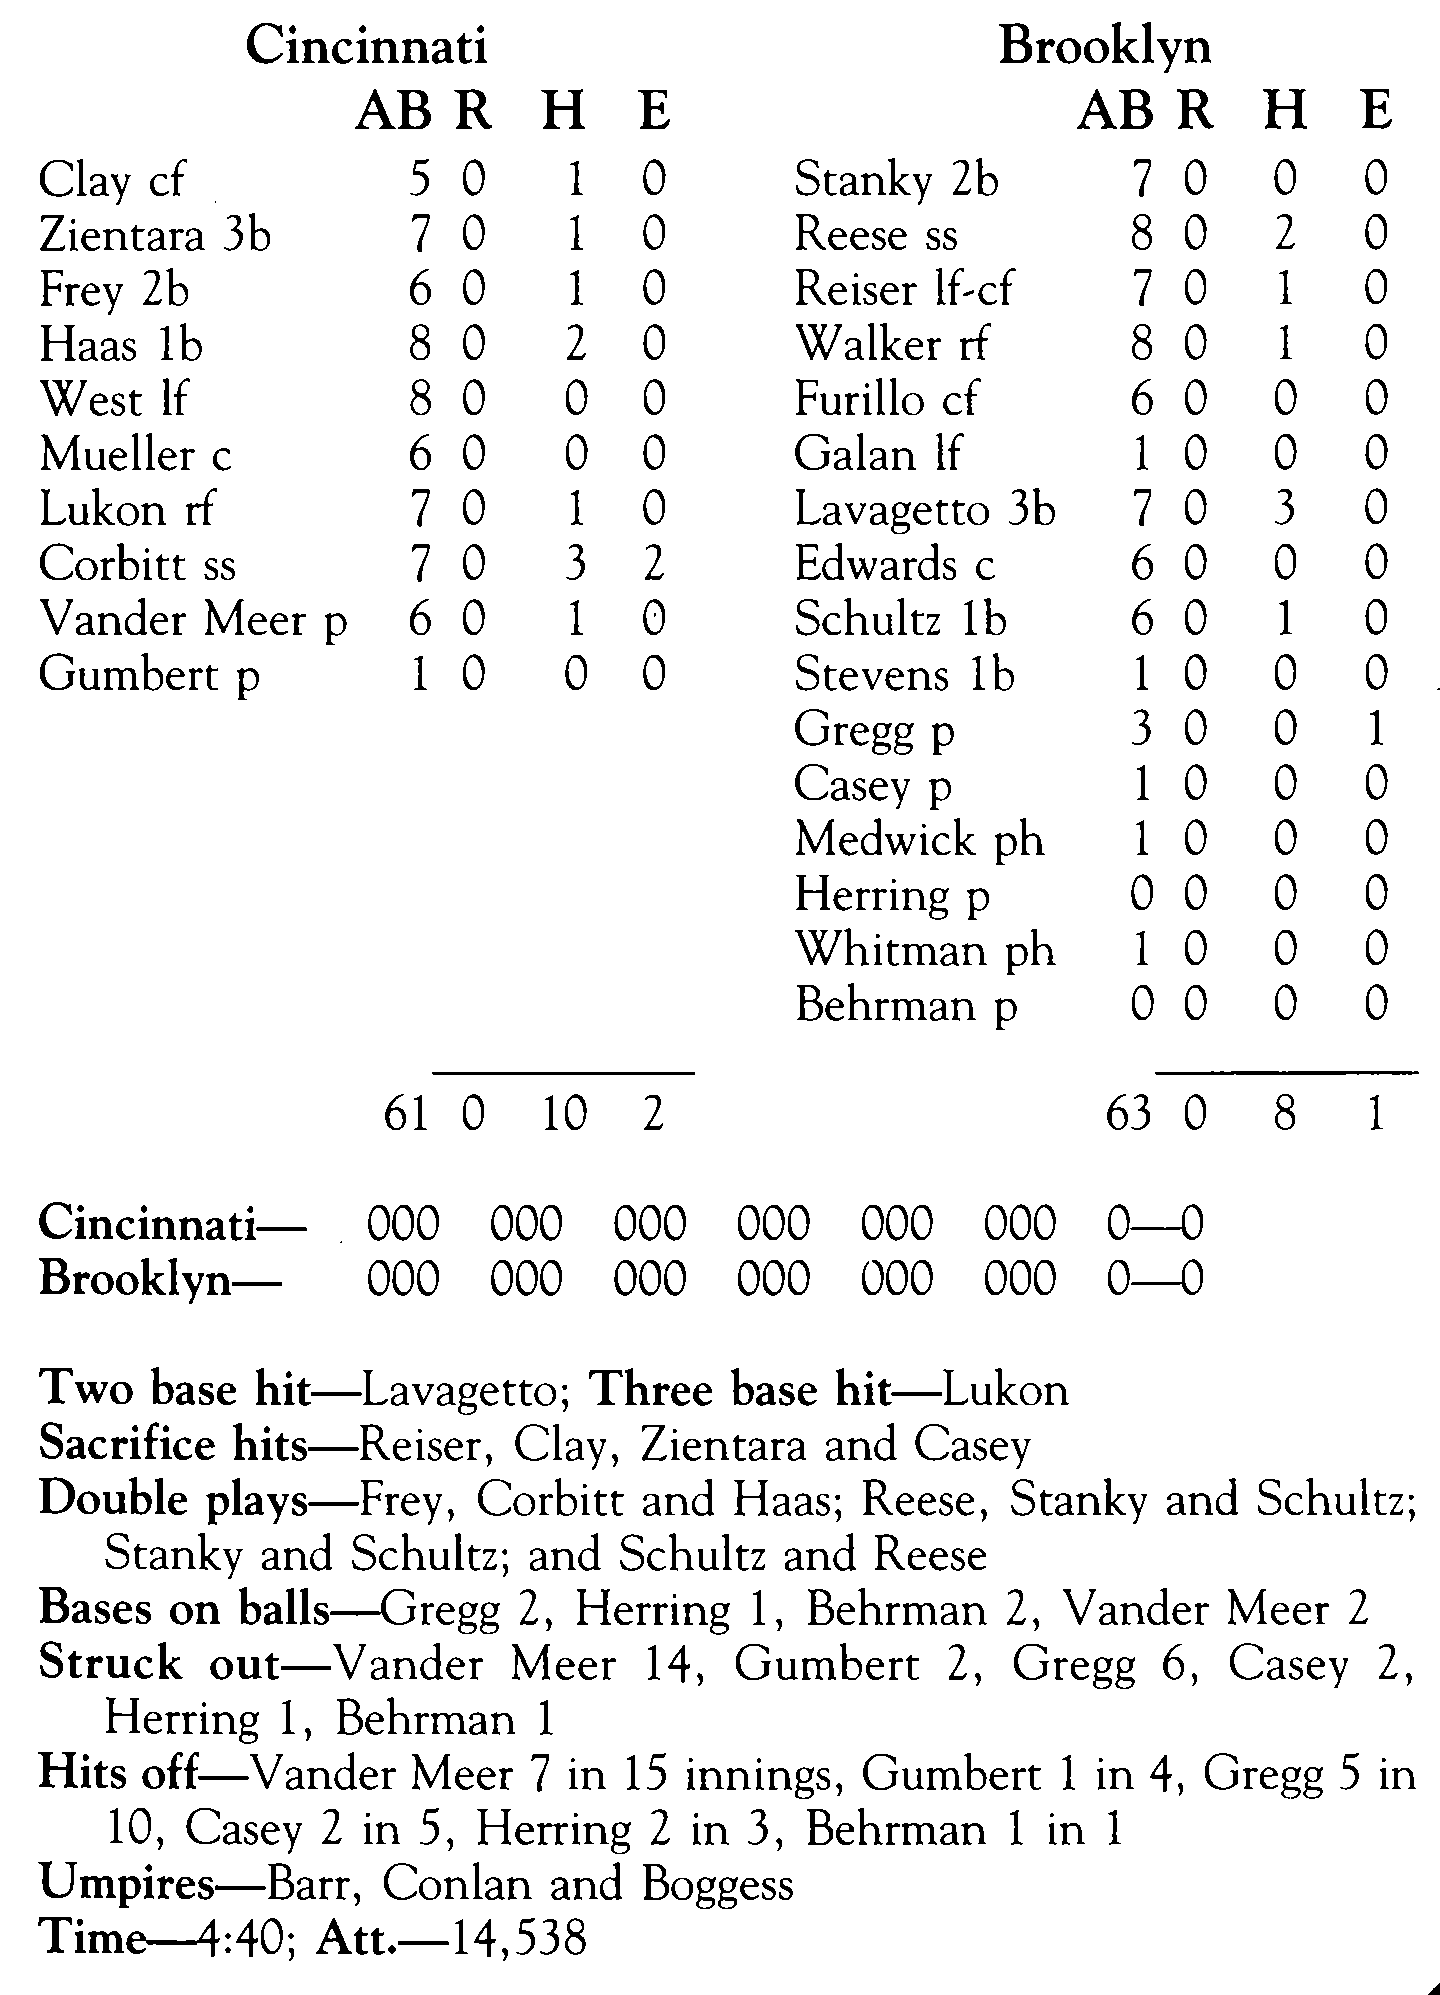 Reds vs. Dodgers box score, September 11, 1946